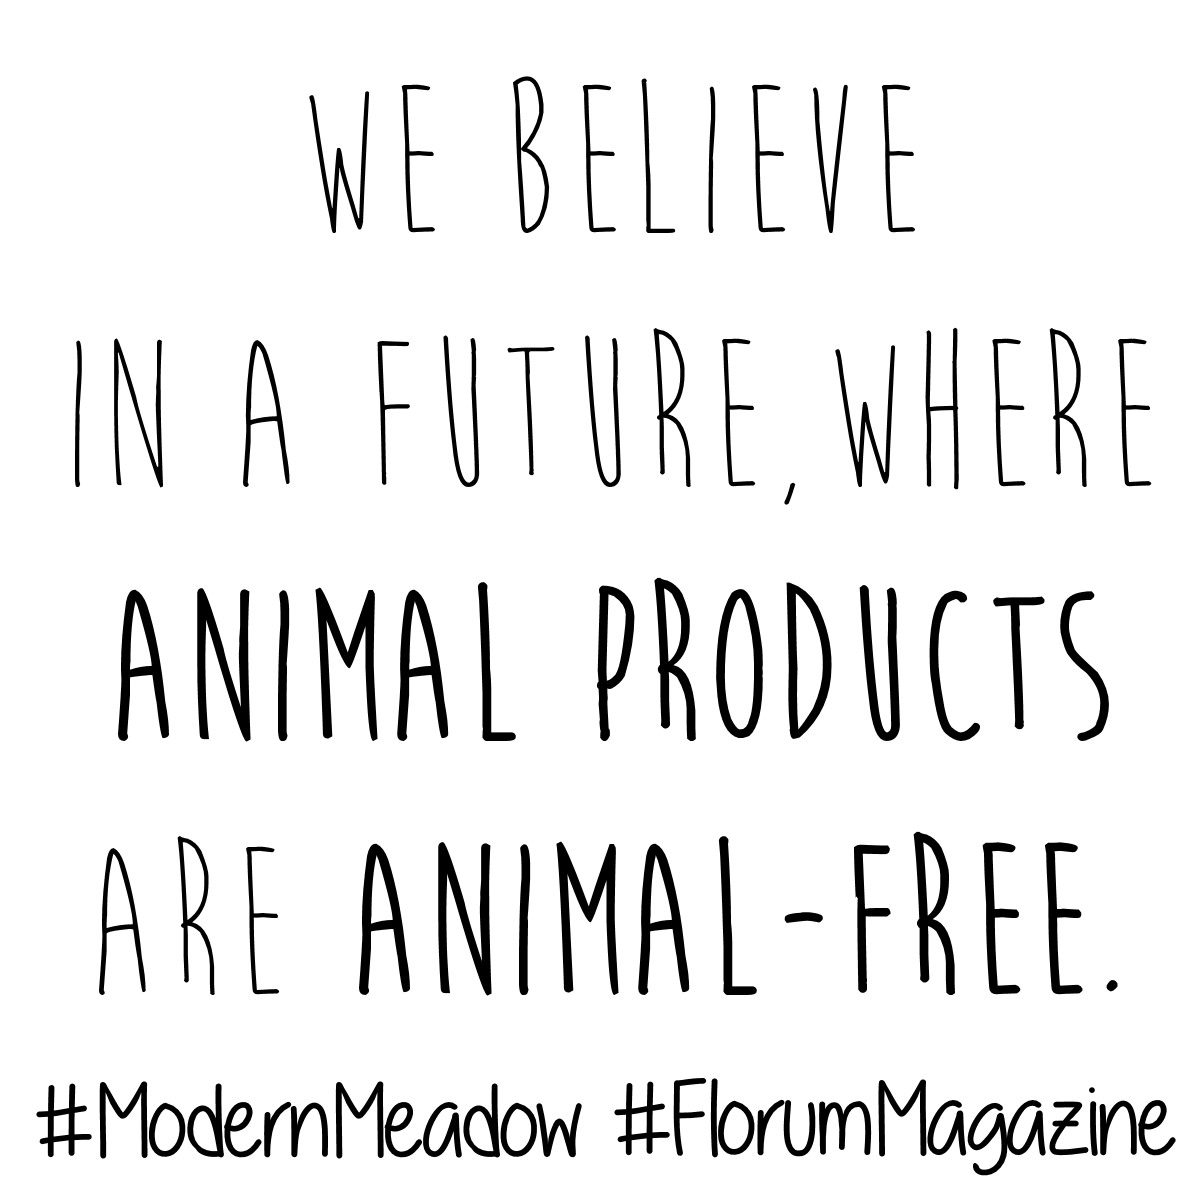 sustainable fashion quotes - fashion revolution Consume with a conscious - vegan leather - animal free - modern meadow  florum fashion magazine - noelle lynne - clean beauty sustainable natural leather alternative.jpg